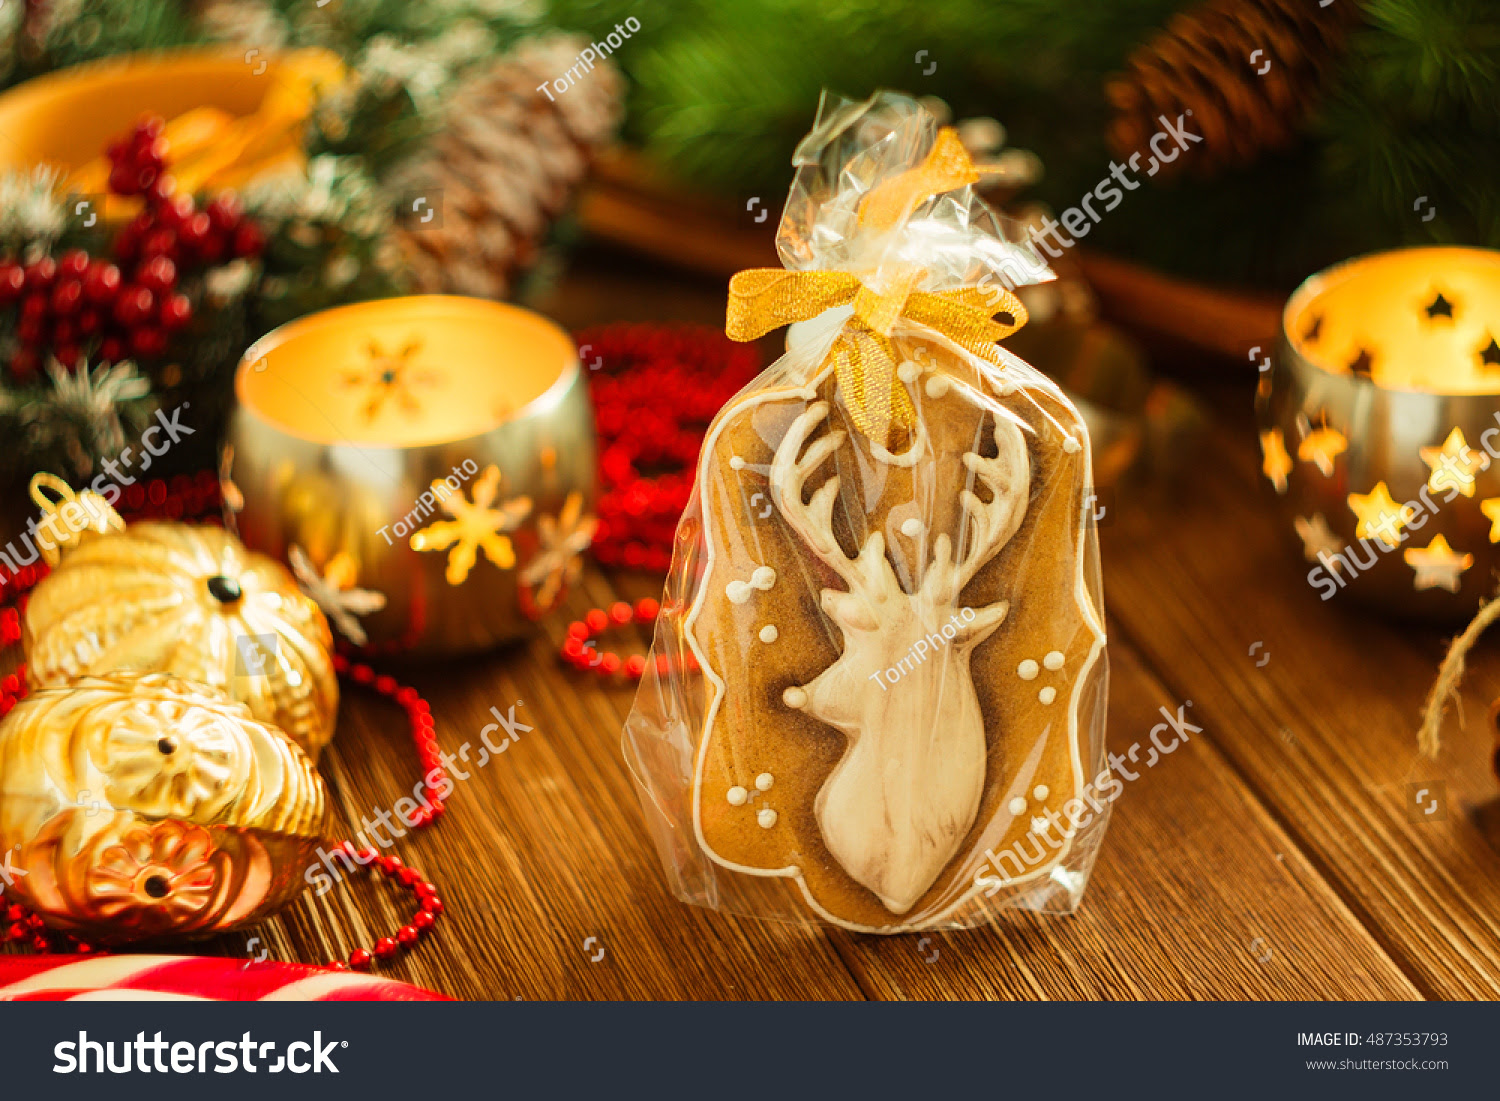 Christmas gingerbread cookies deer on rustic background with Christmas decorations and candle